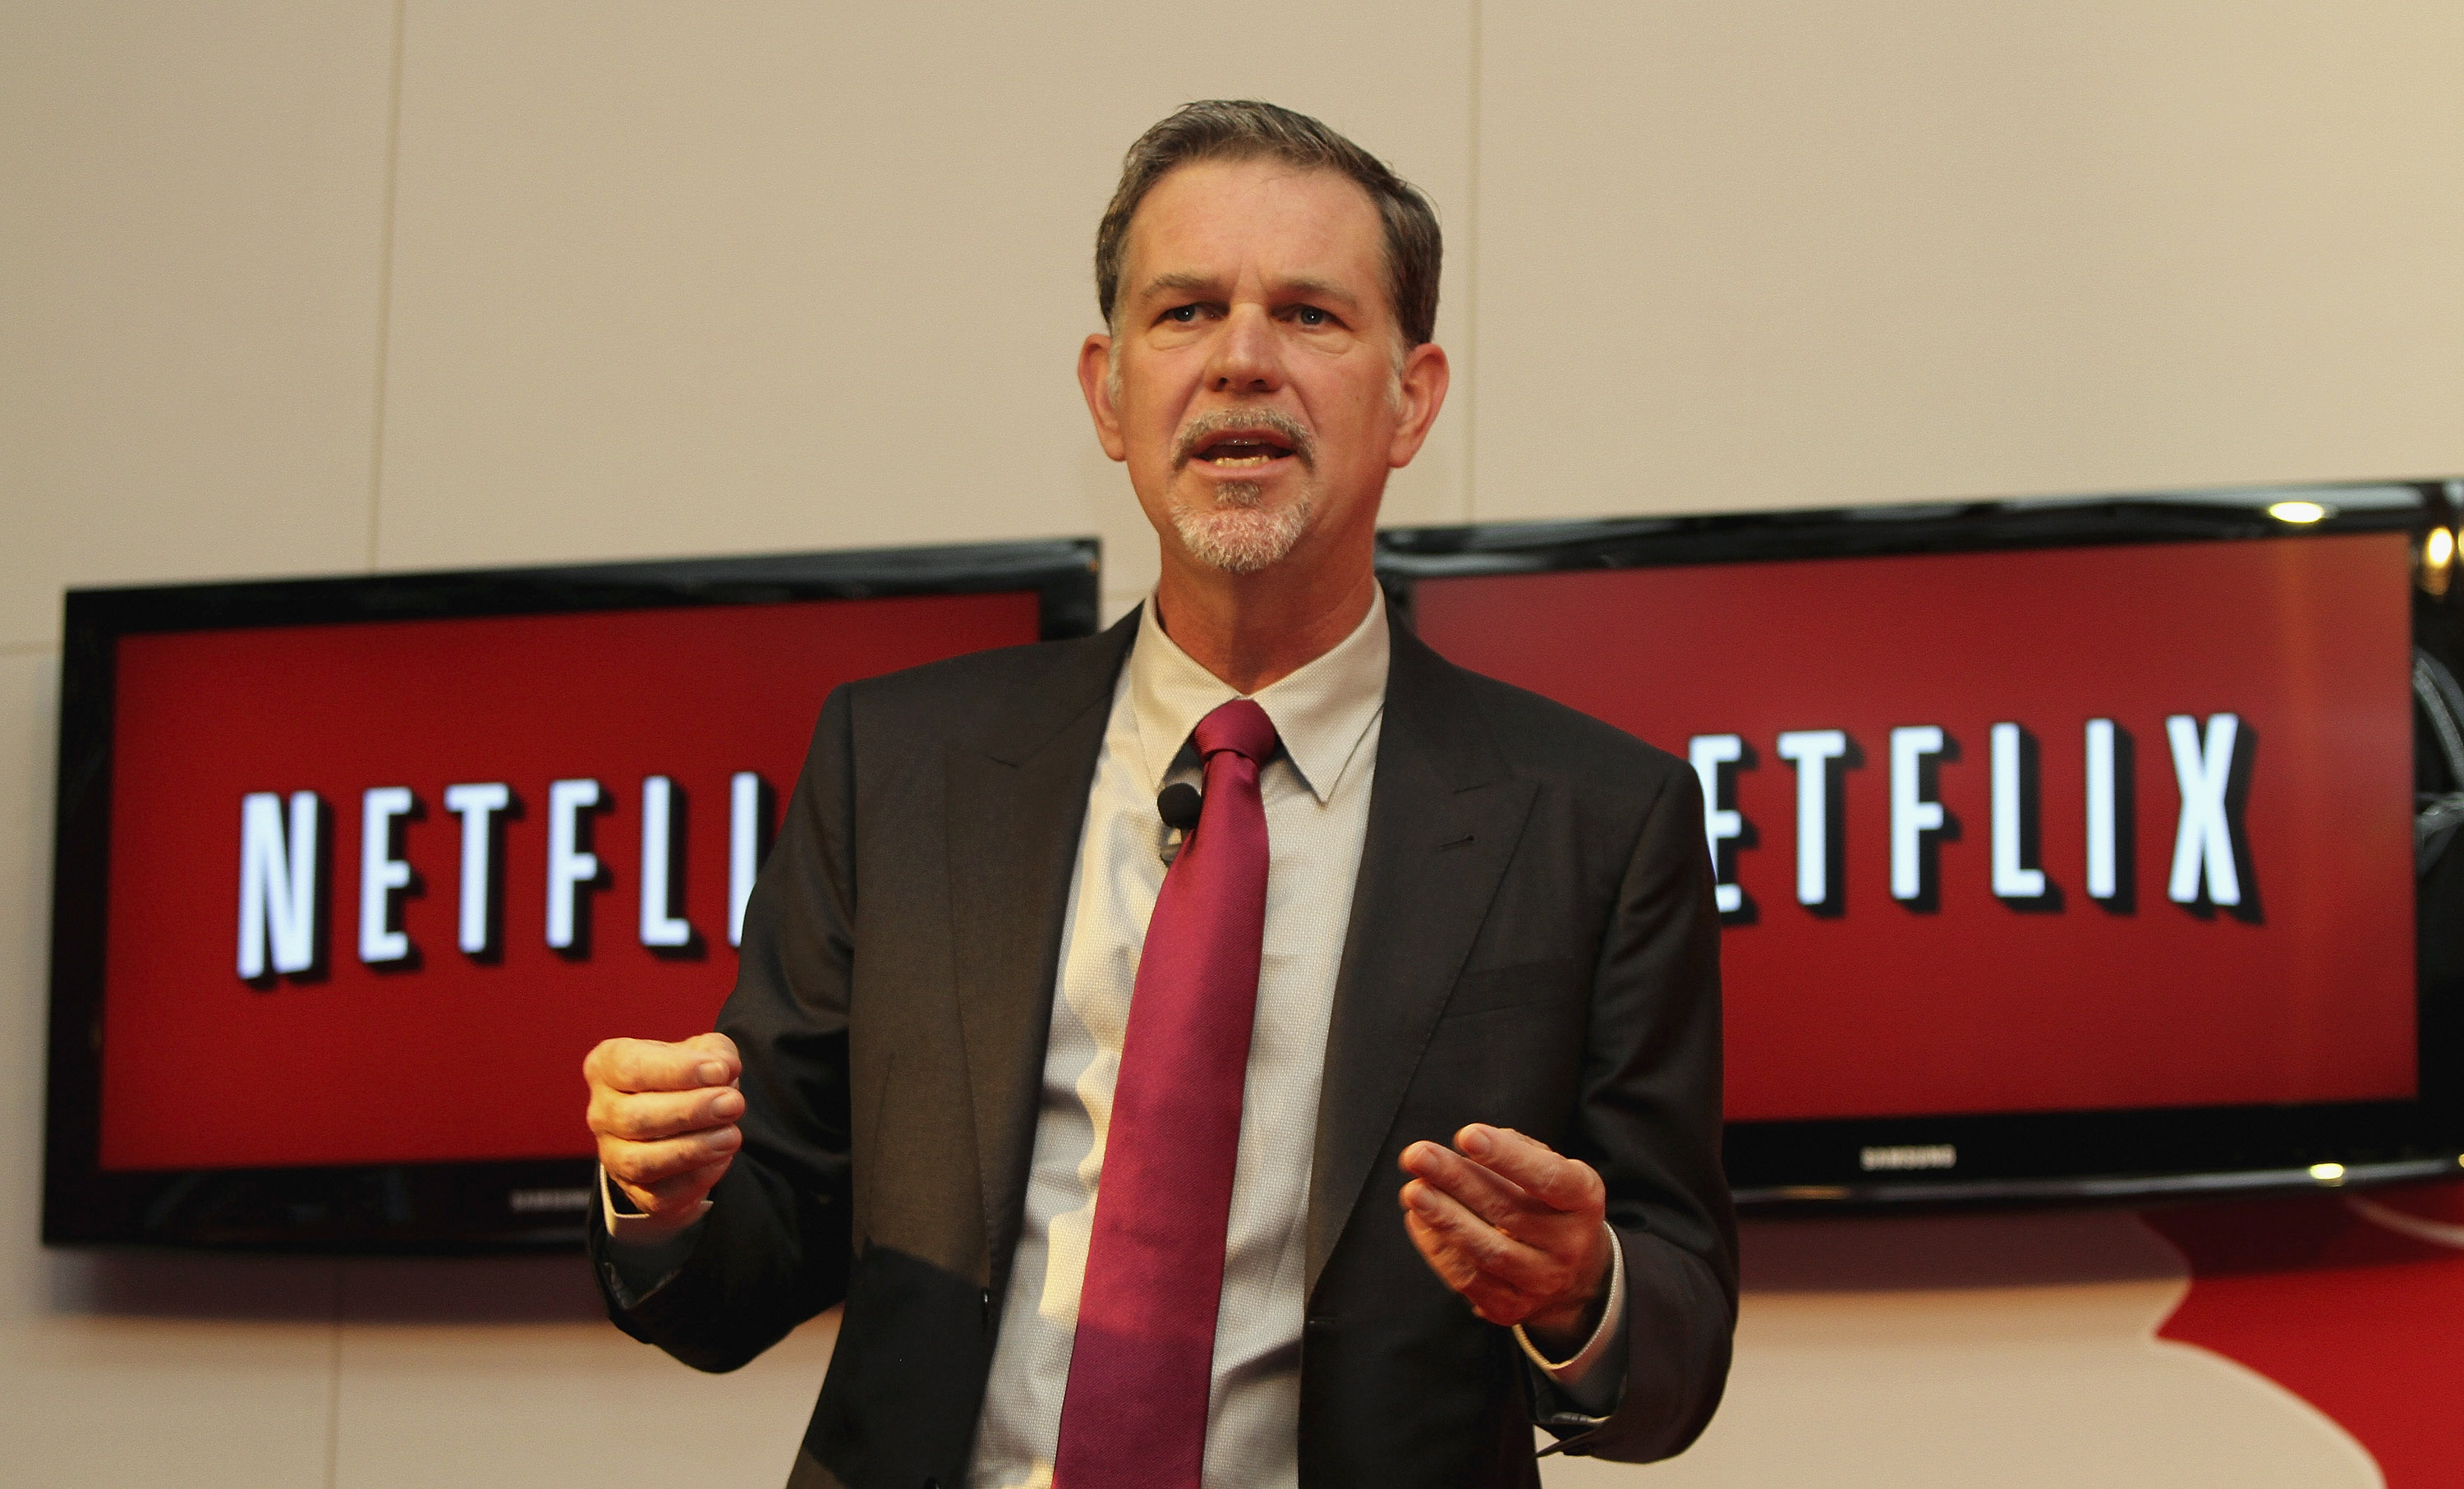 Netflix Launches In Colombia - Party